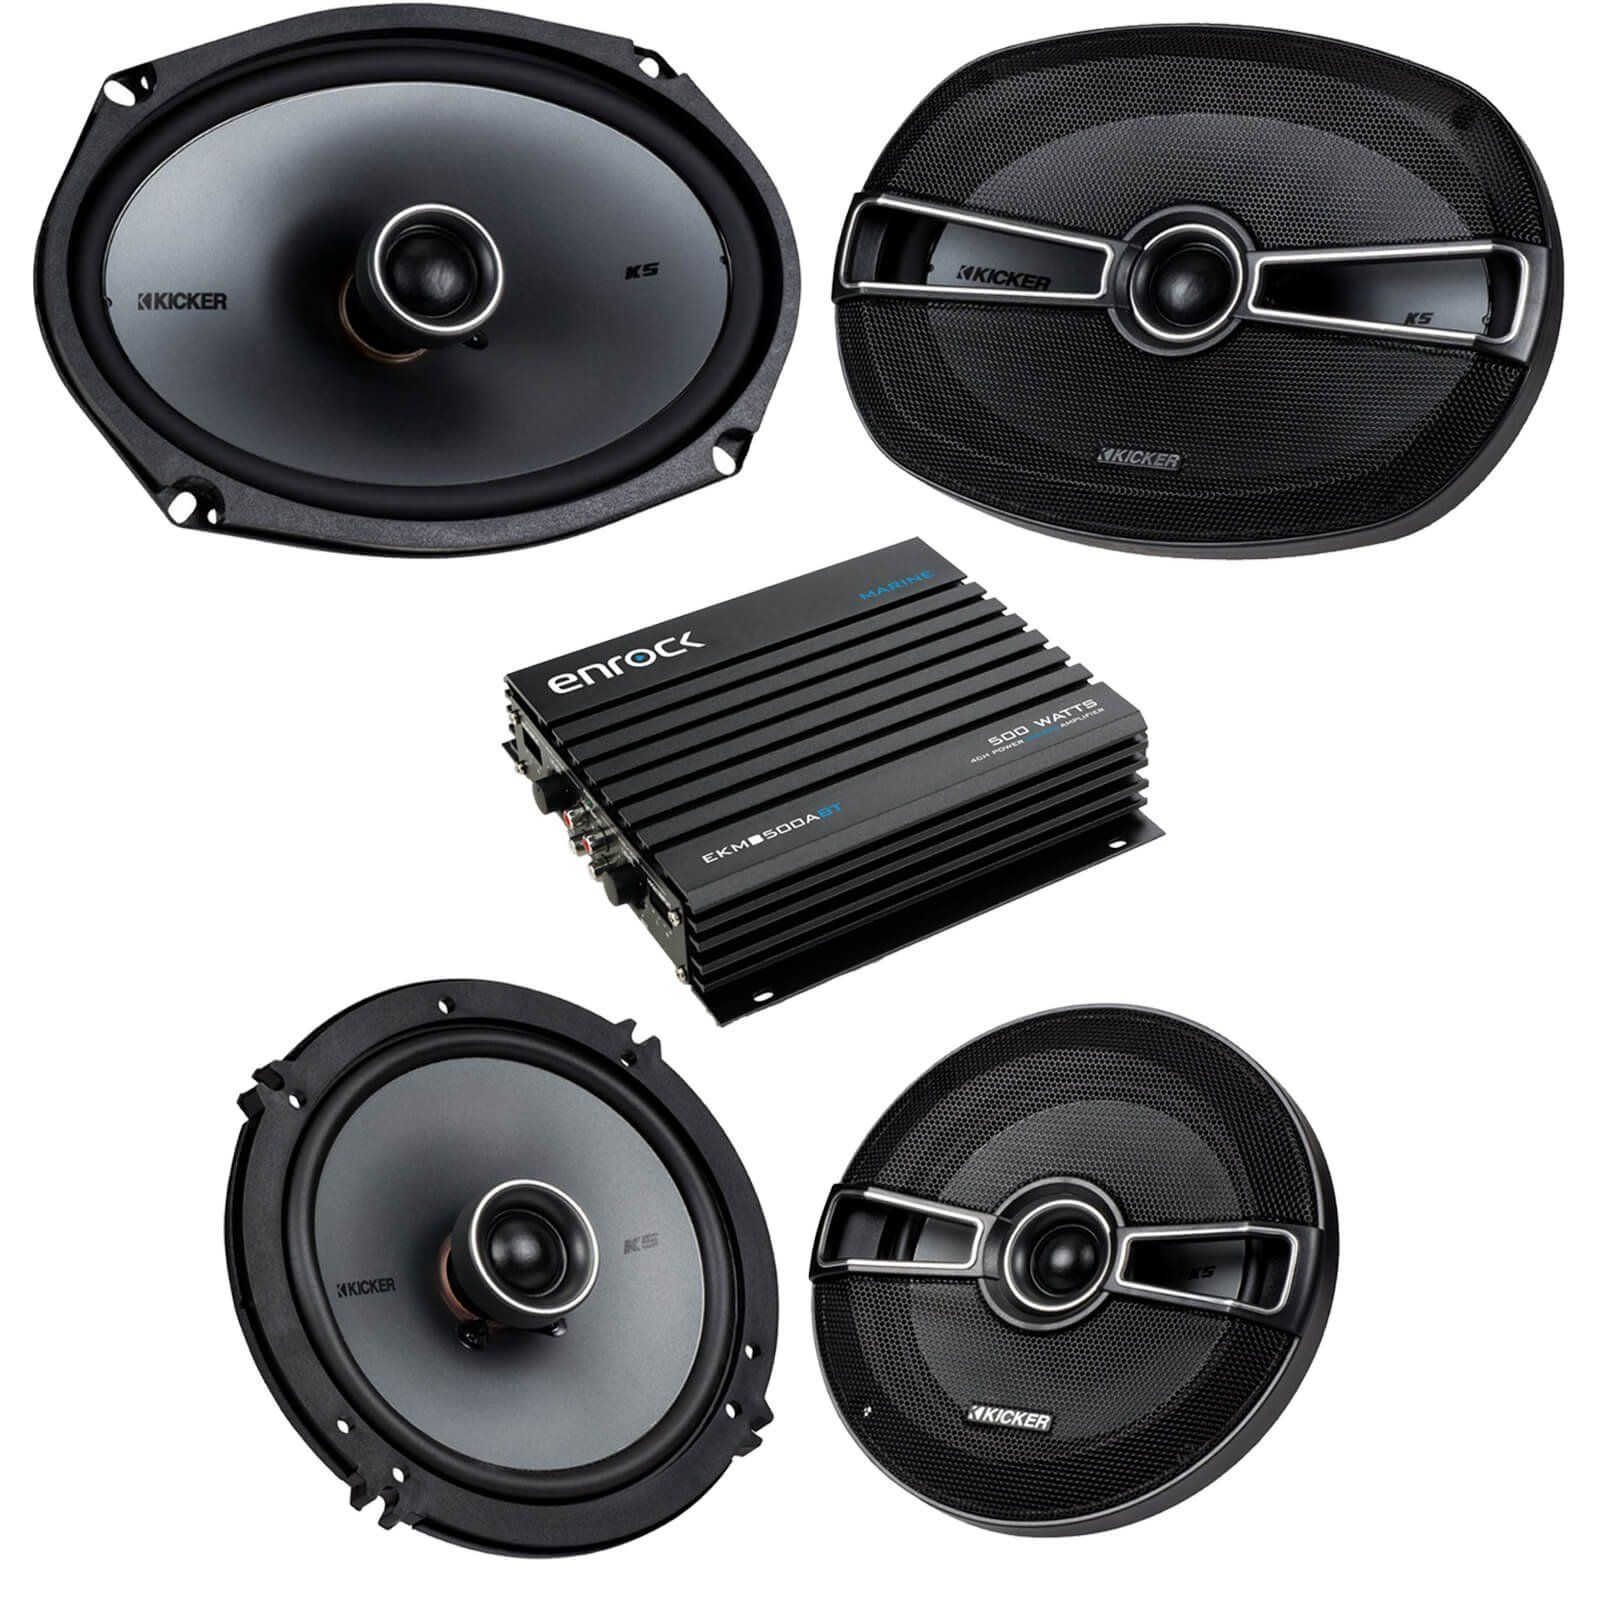 Car Speaker Bluetooth Streming Set Bundle Combo With 2 Kicker Polk Audio Subwoofer Wiring Kits 41ksc654 65 Inch Way Vehicle Stereo Speakers 41ksc694 6x9 System